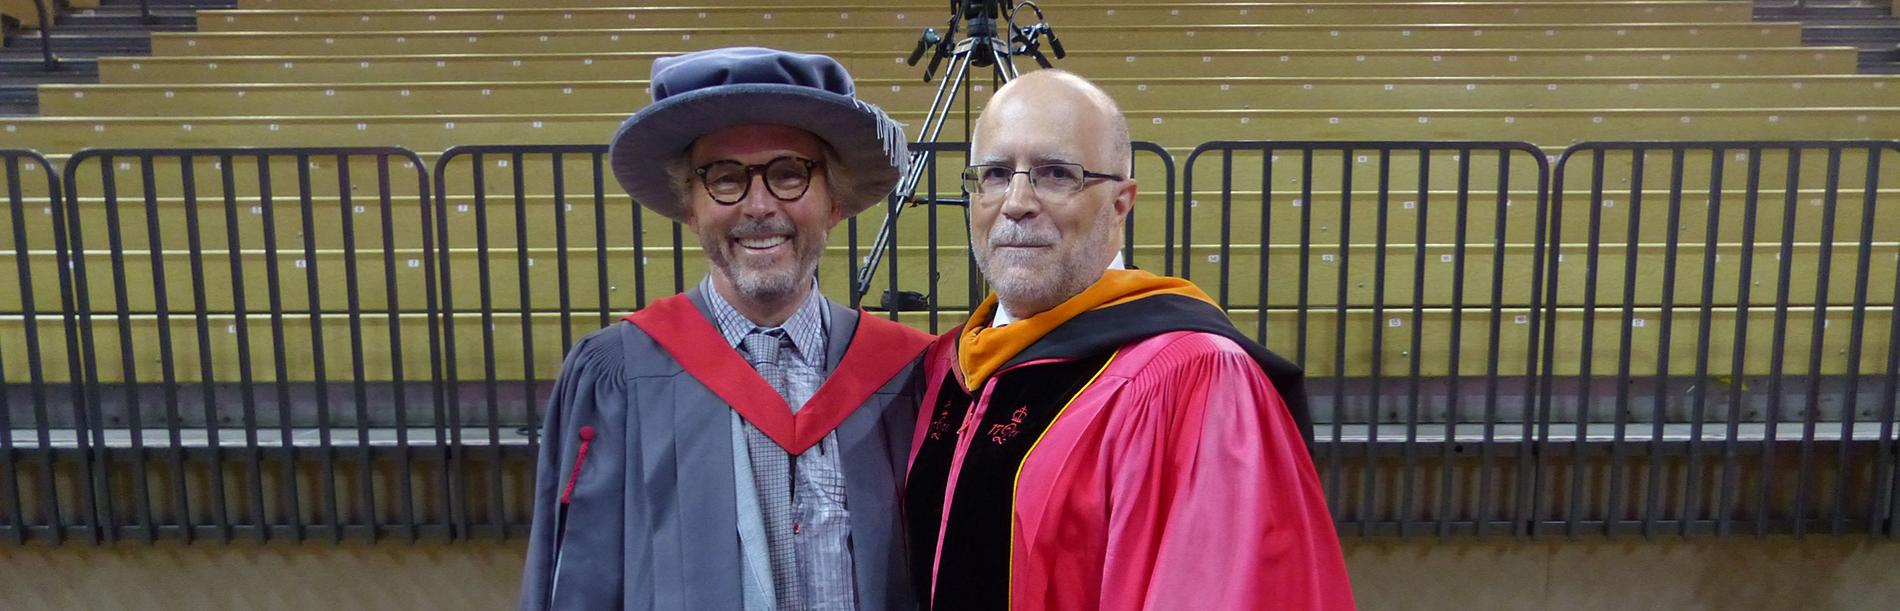 2018 convocation Jonathan Potter and Jon Oliver